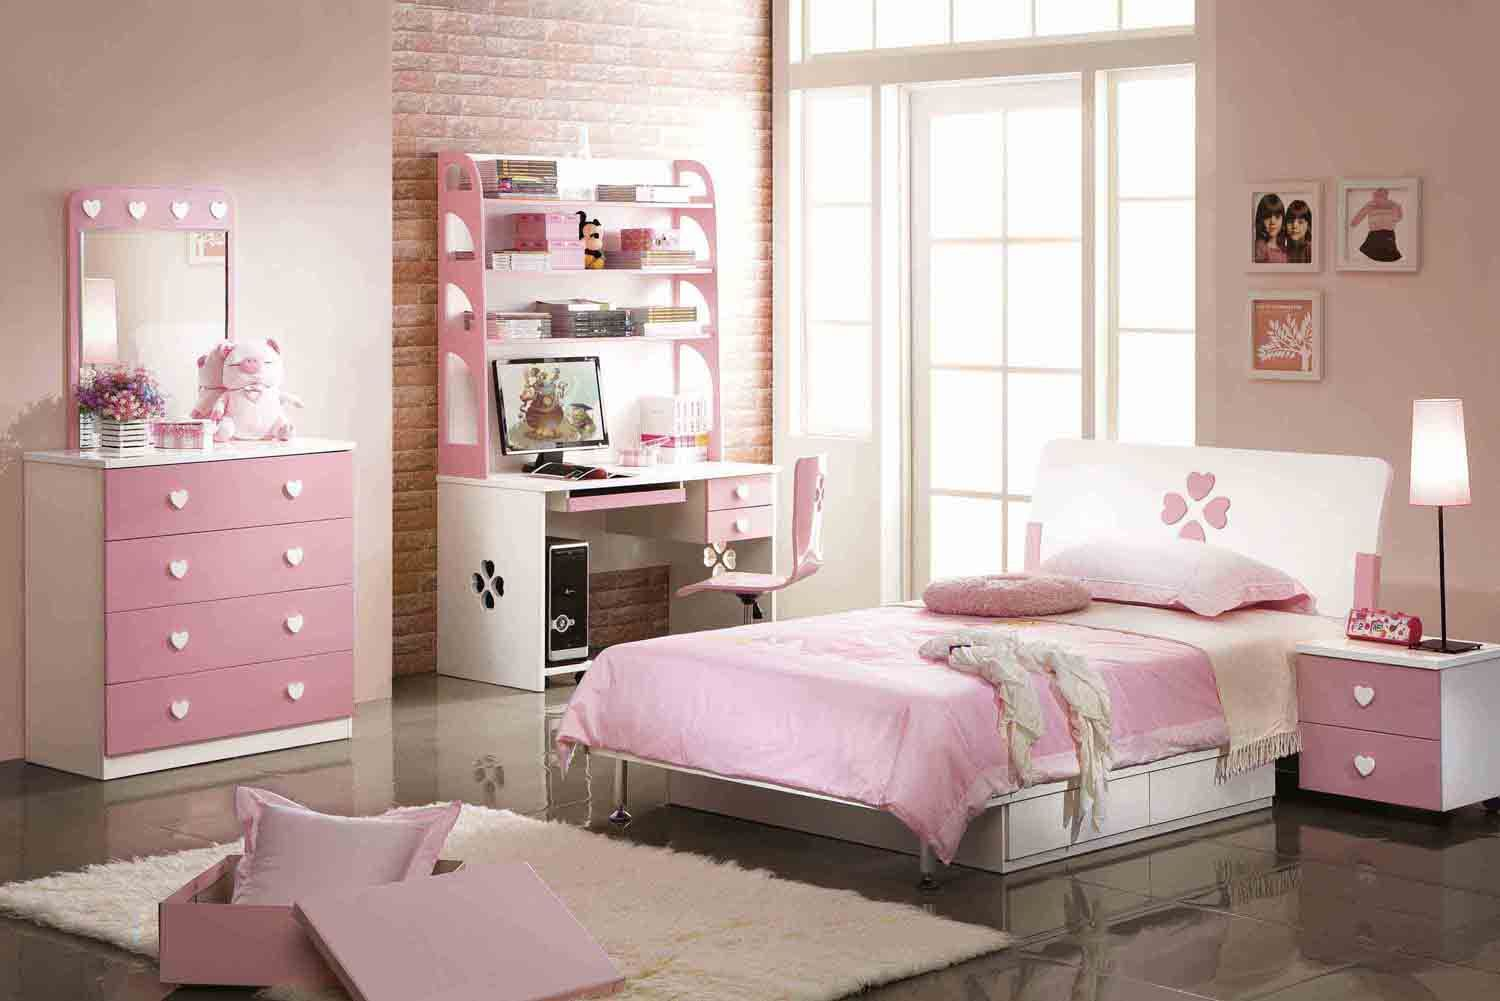 pink bedroom photos | design ideas 2017-2018 | pinterest | pink